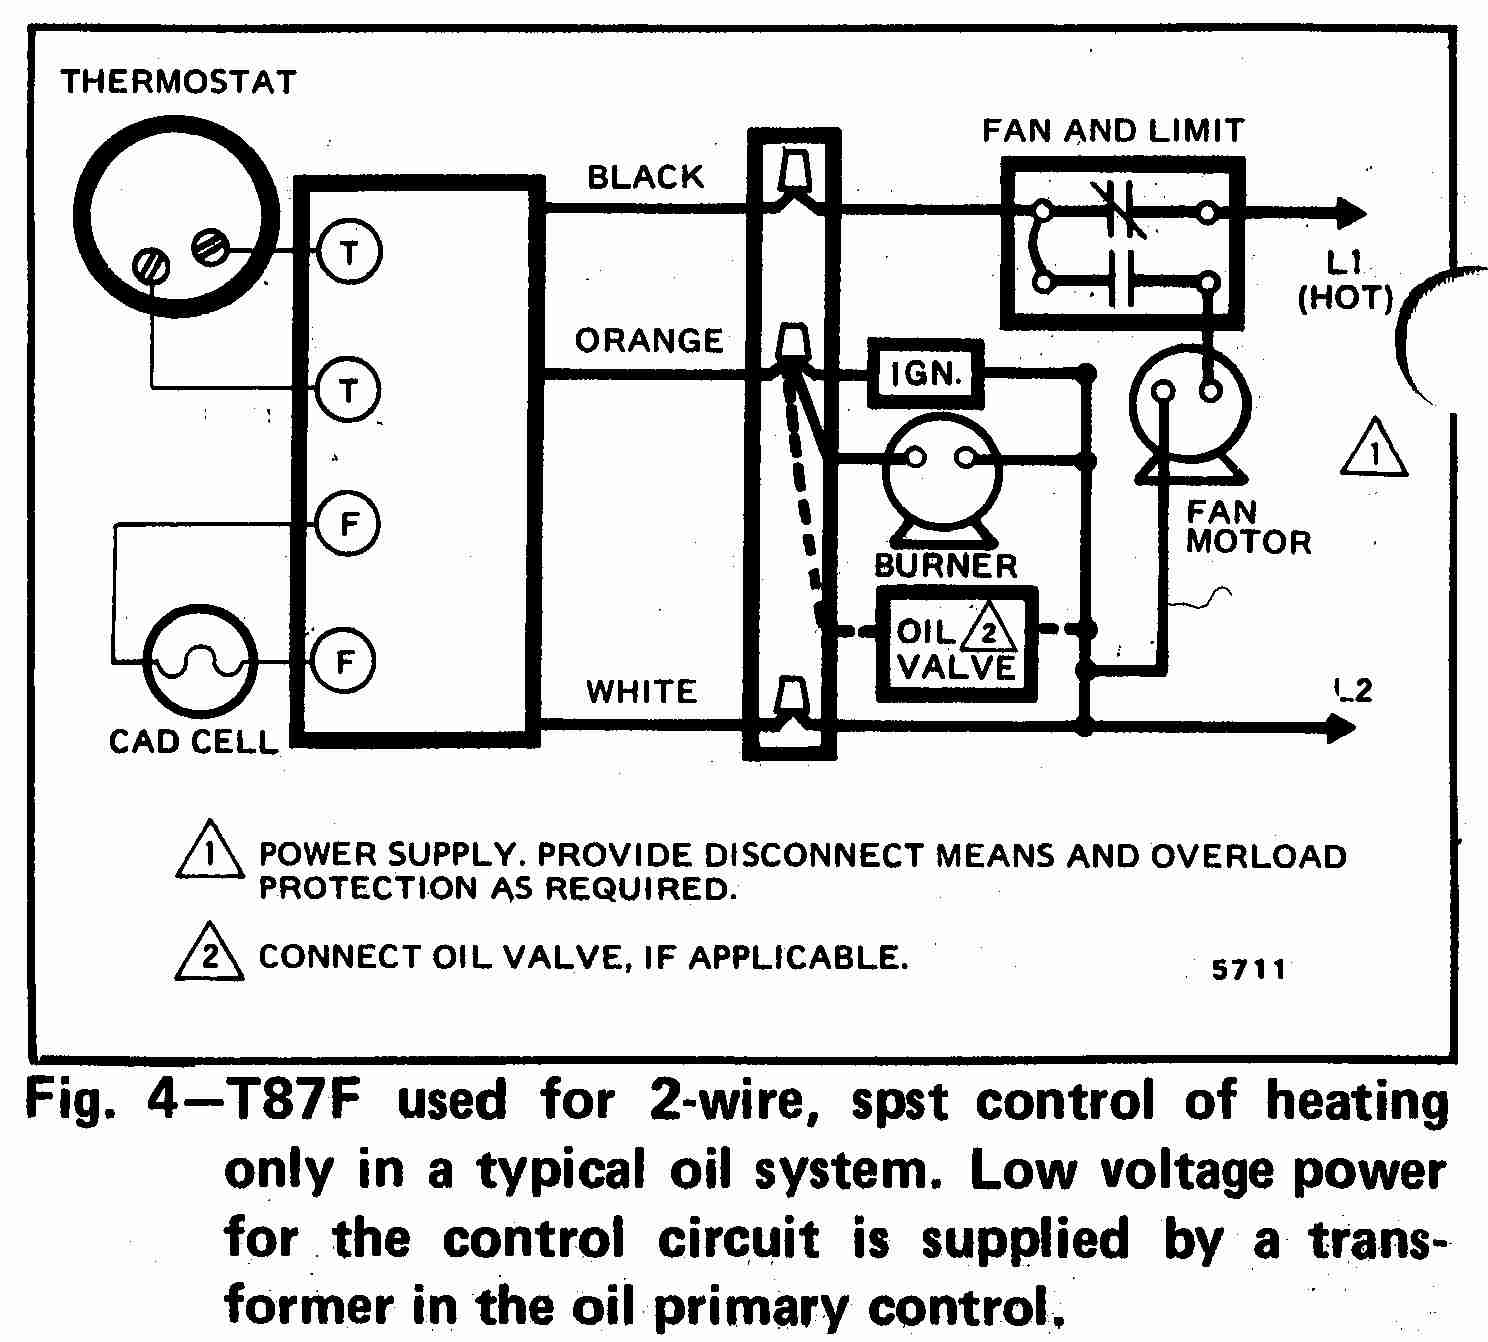 room thermostat wiring diagrams for hvac systems rh inspectapedia com wiring diagram for thermostat to furnace wiring diagram for thermostat to boiler